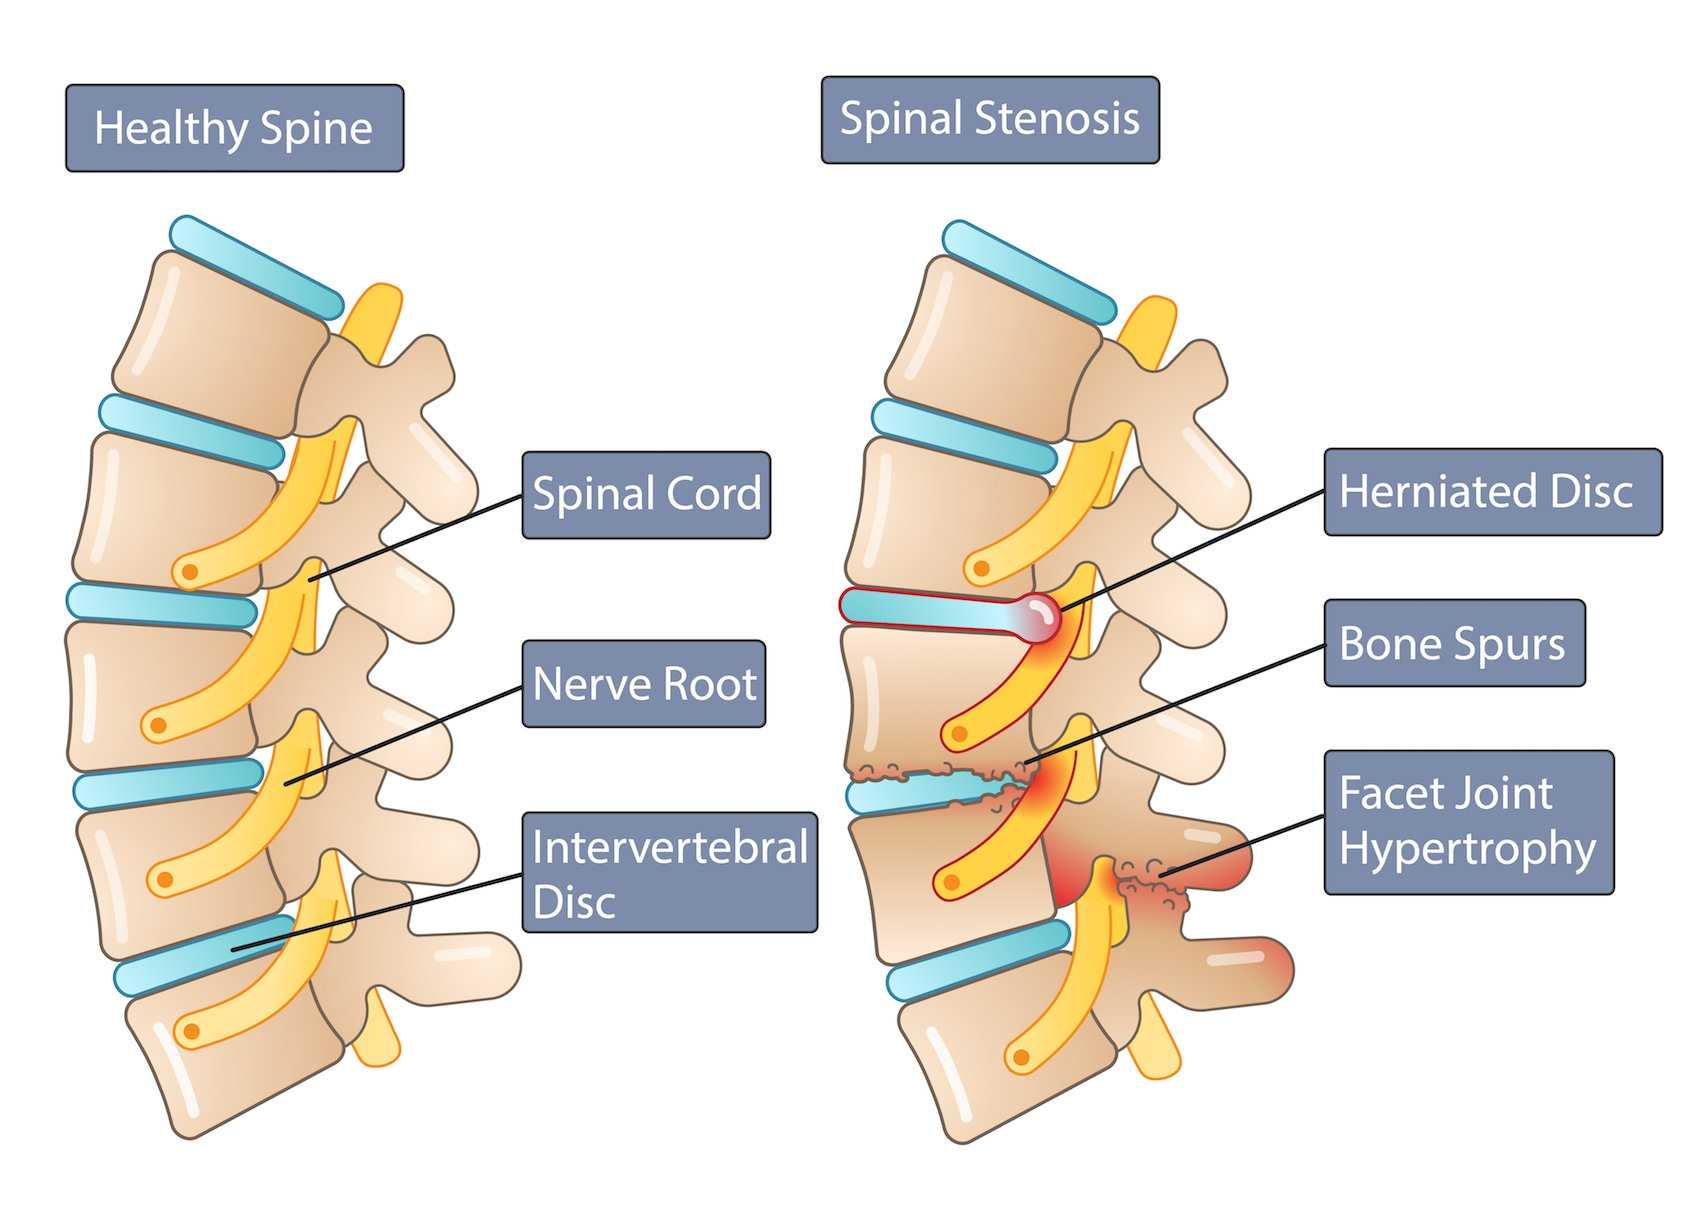 Spinal Stenosis Versus Healthy Spine Anatomy